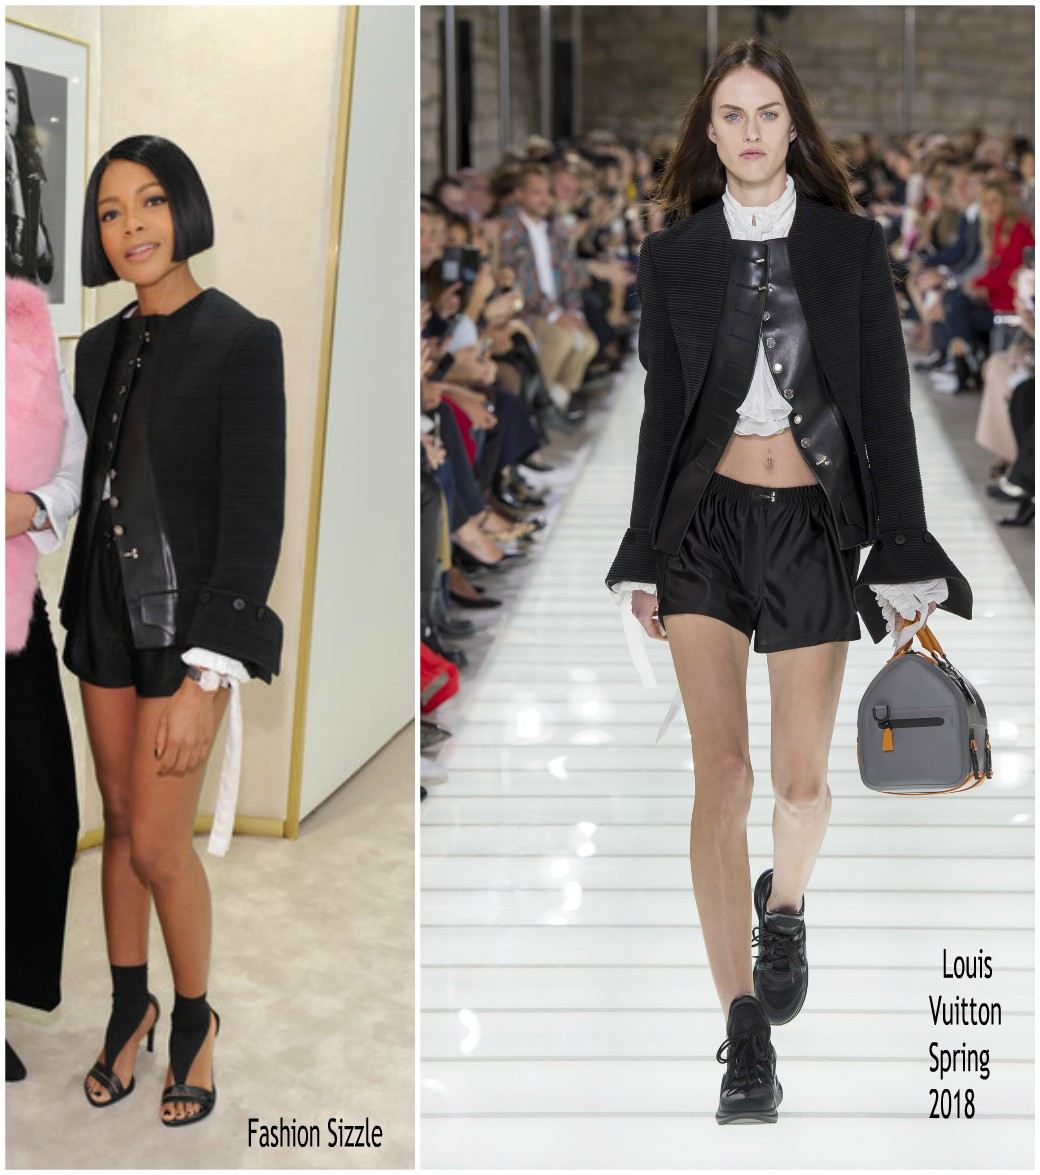 naomie-harris-in-louis-vuitton-omega-her-time-pop-up-boutique